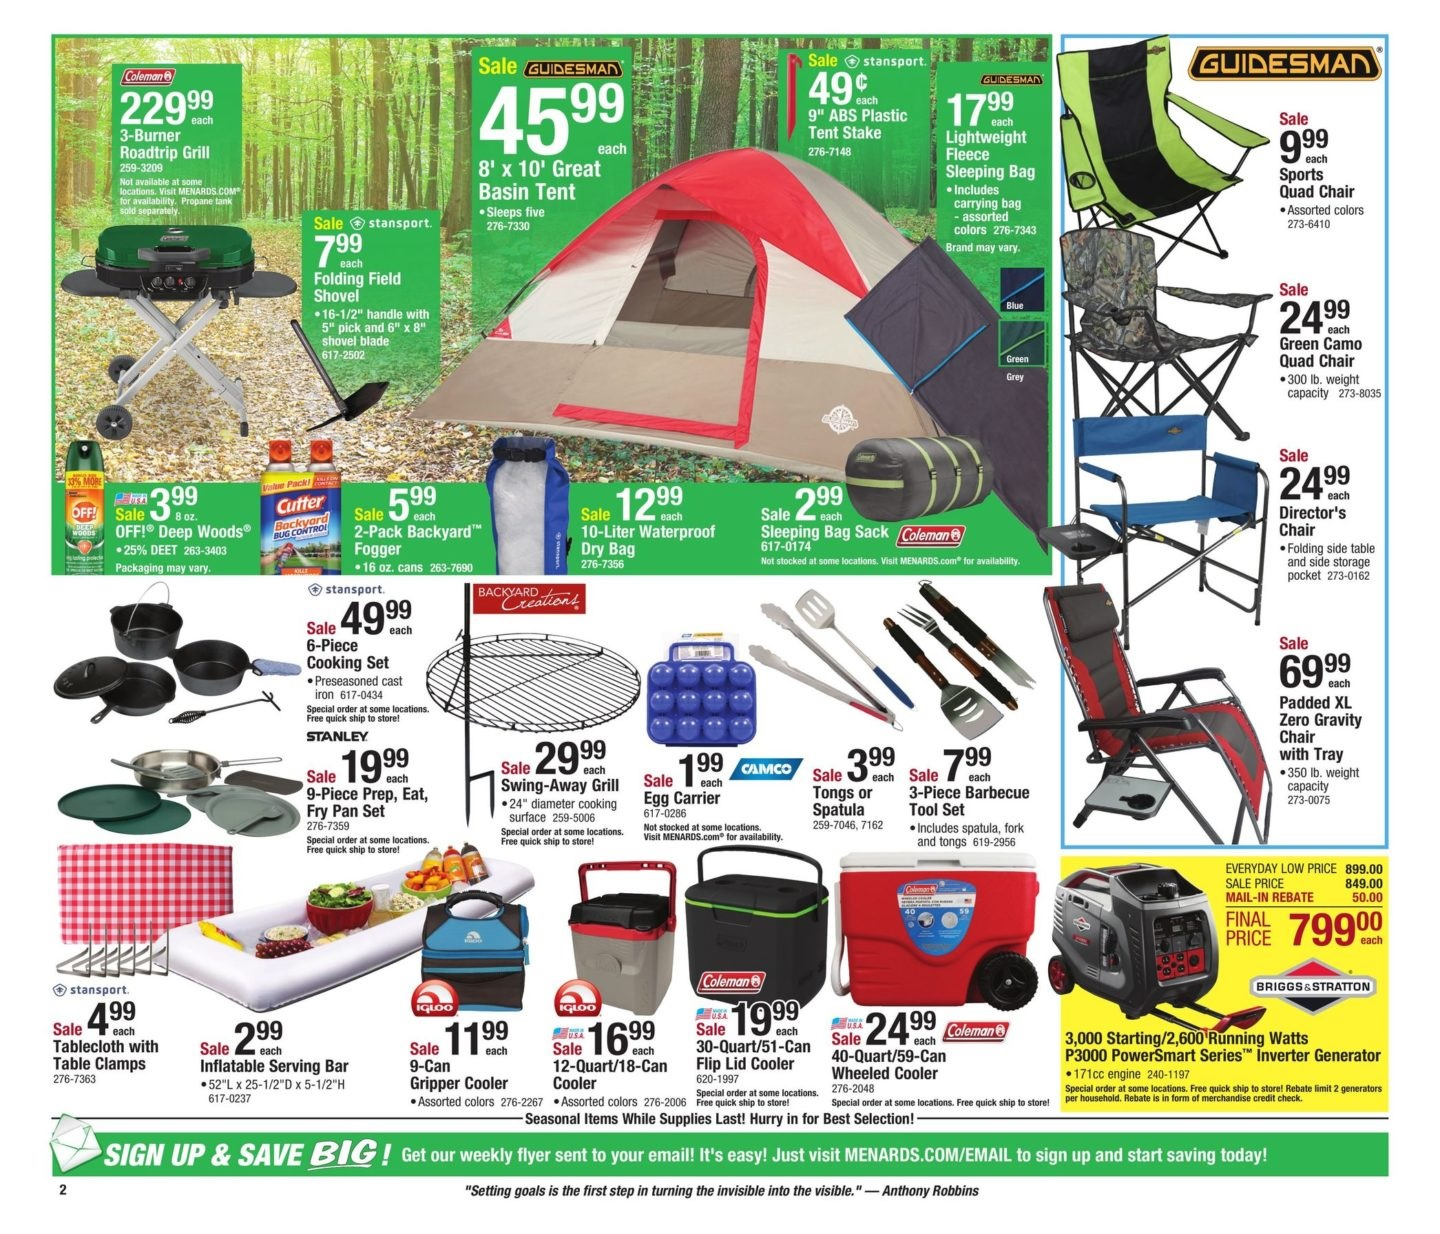 Menards Weekly Sale Ad May 19 June 2 2019